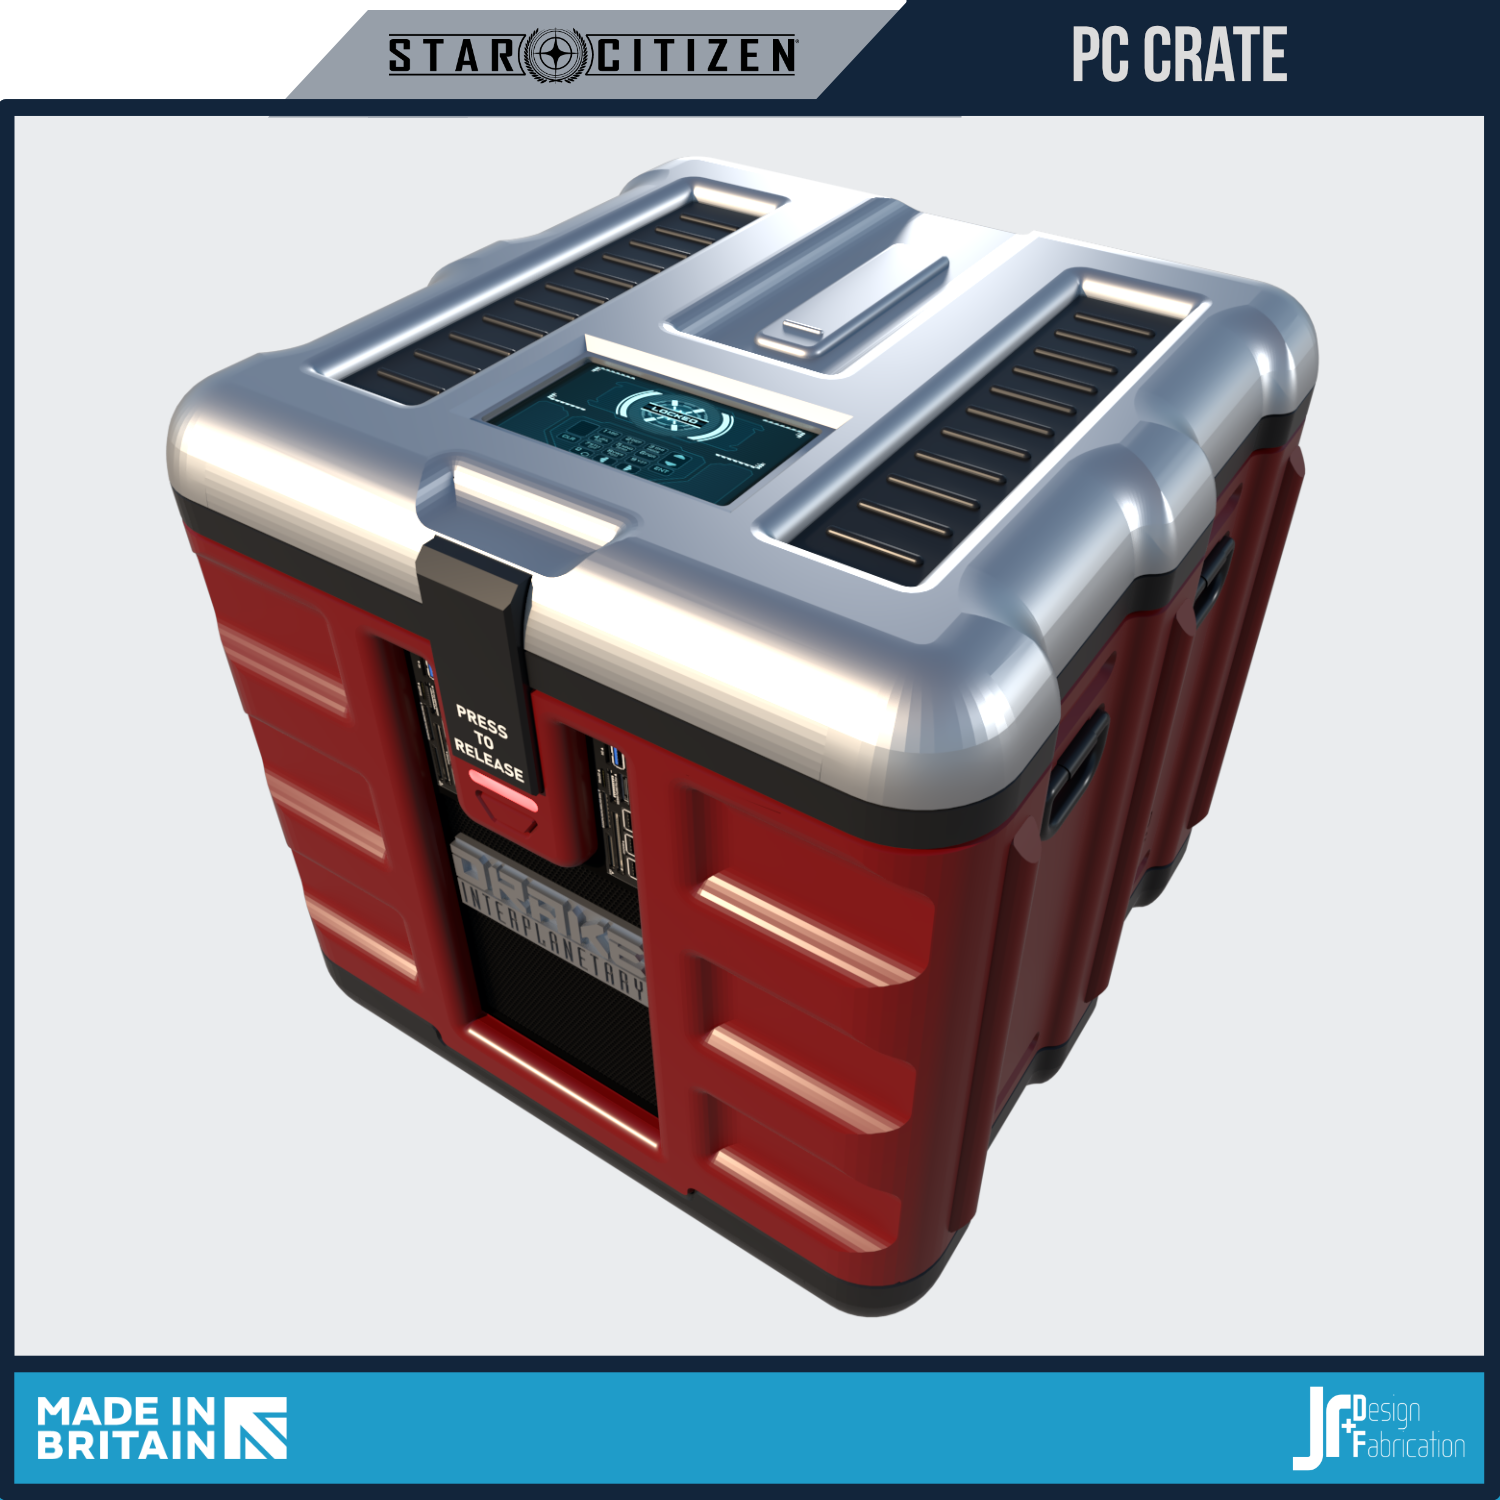 PC Crate image 01.png